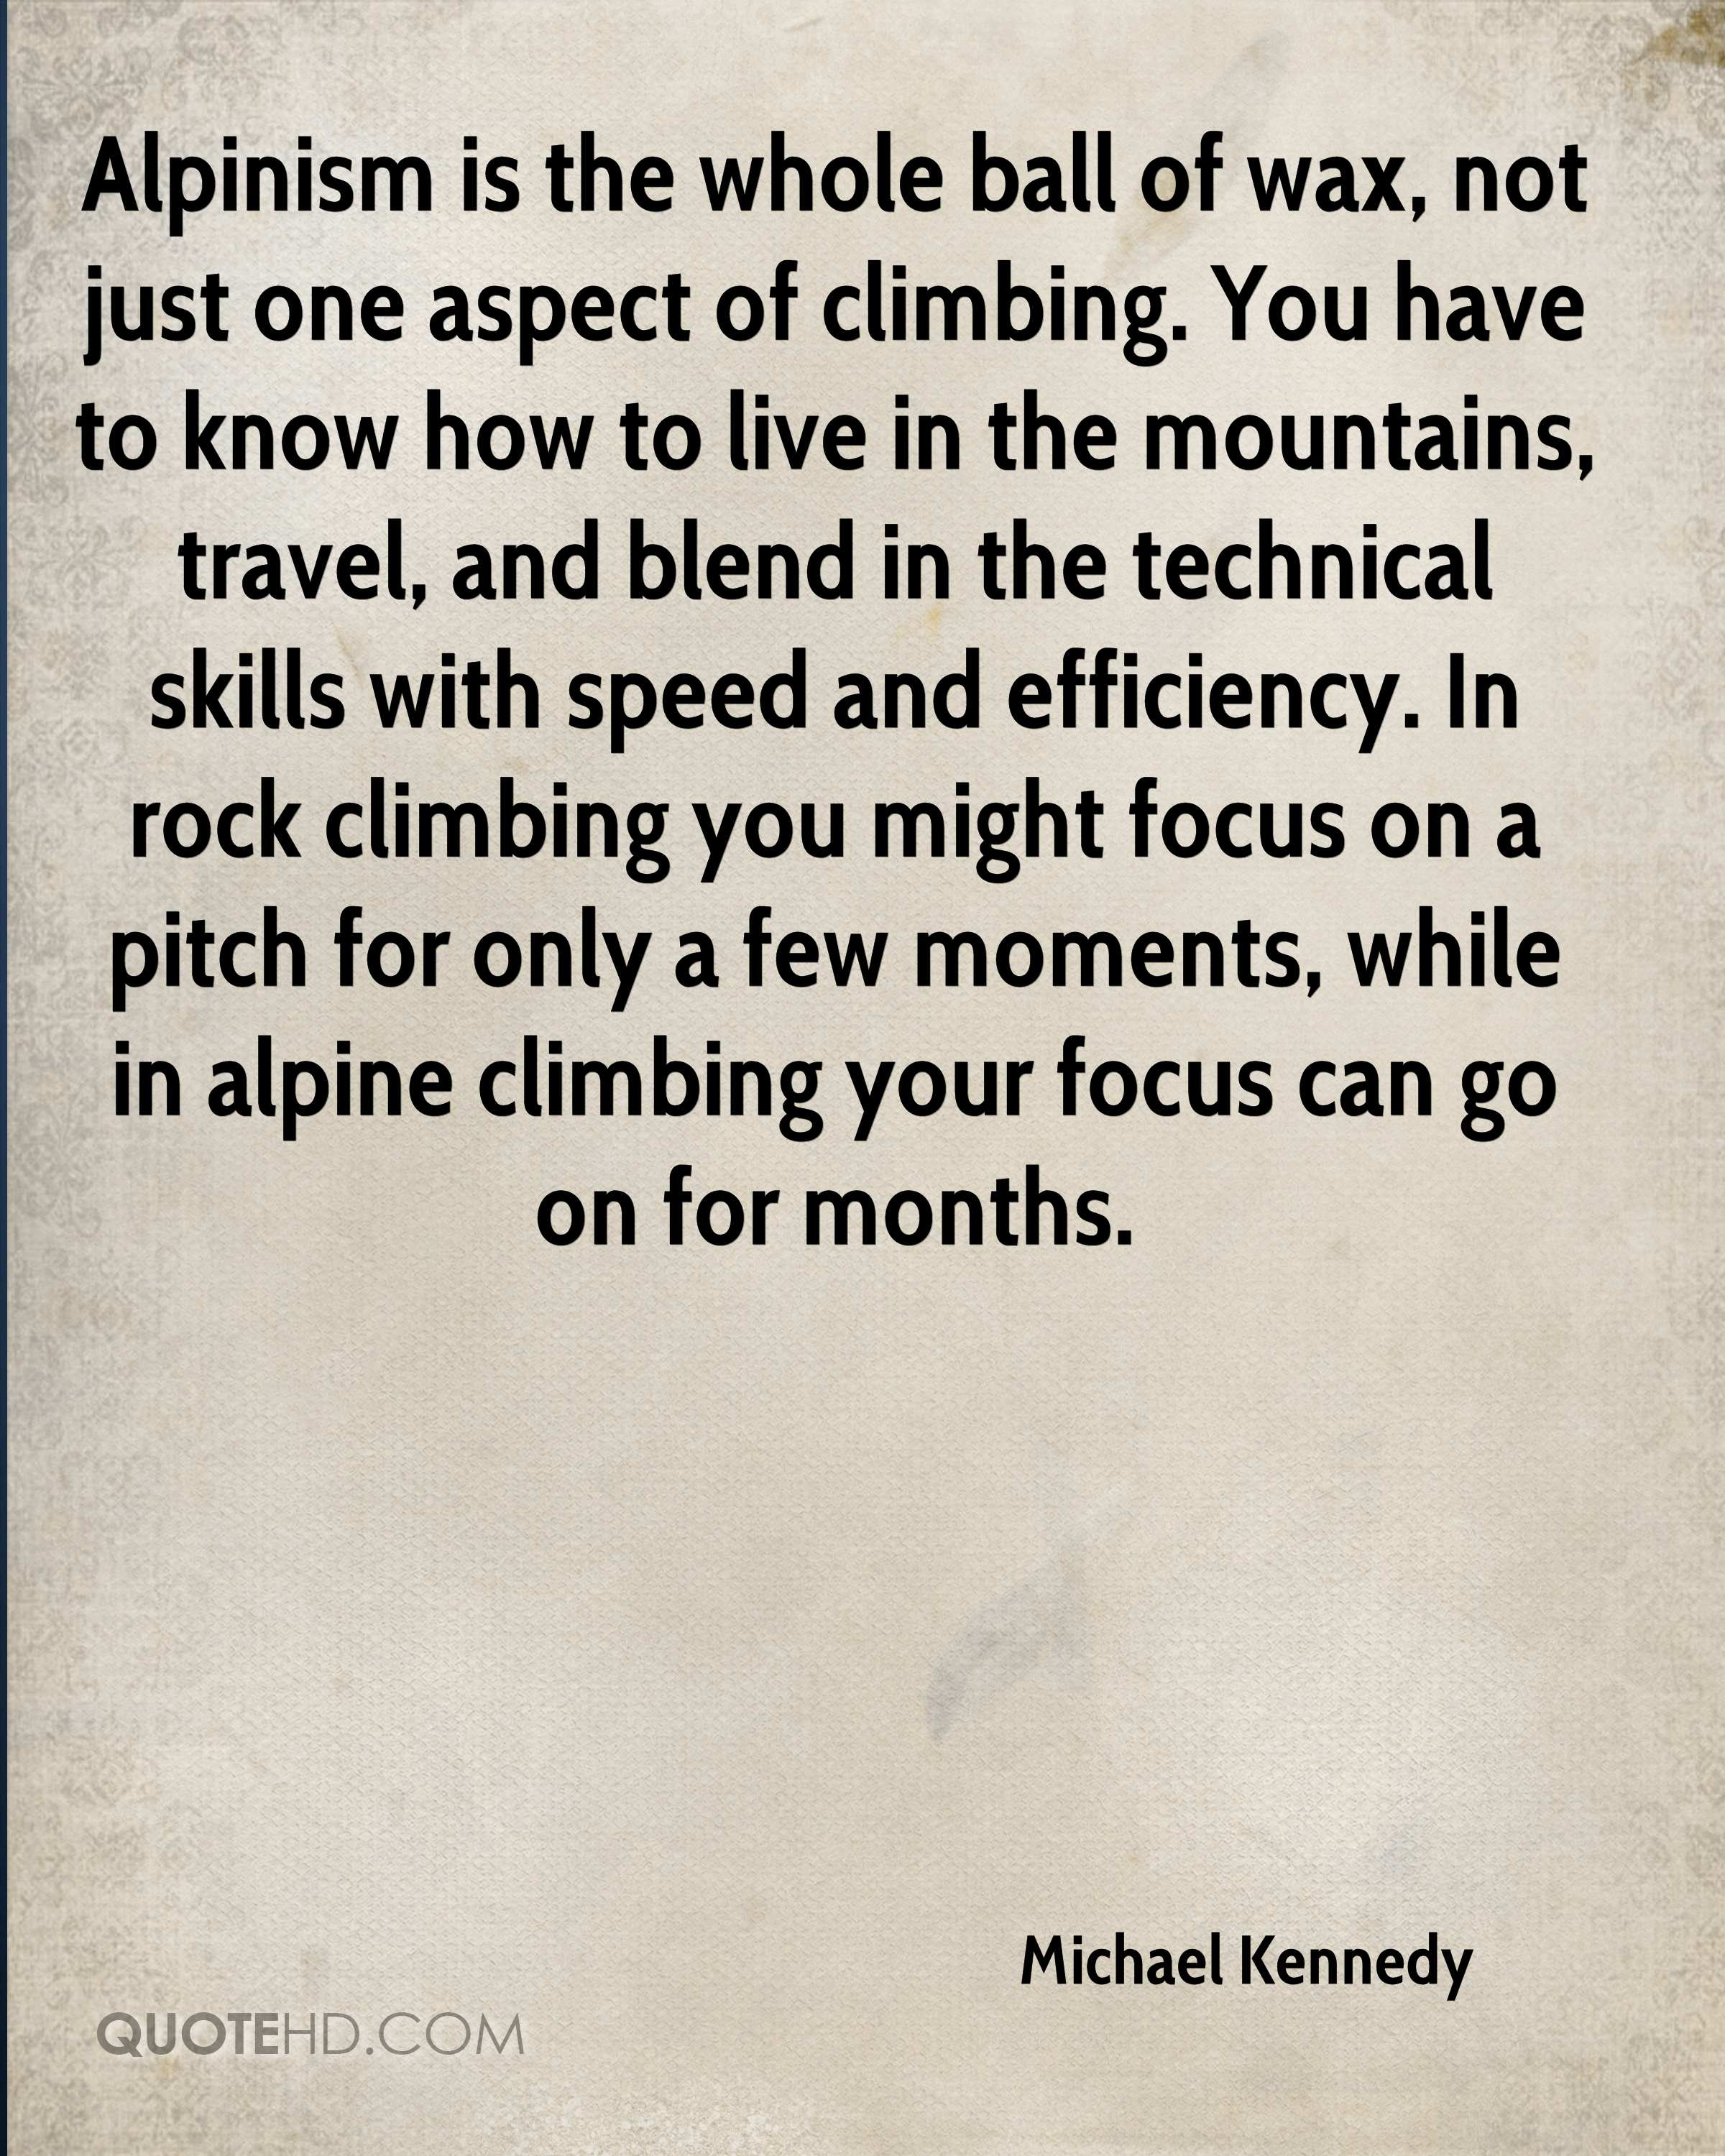 Alpinism is the whole ball of wax, not just one aspect of climbing. You have to know how to live in the mountains, travel, and blend in the technical skills with speed and efficiency. In rock climbing you might focus on a pitch for only a few moments, while in alpine climbing your focus can go on for months.